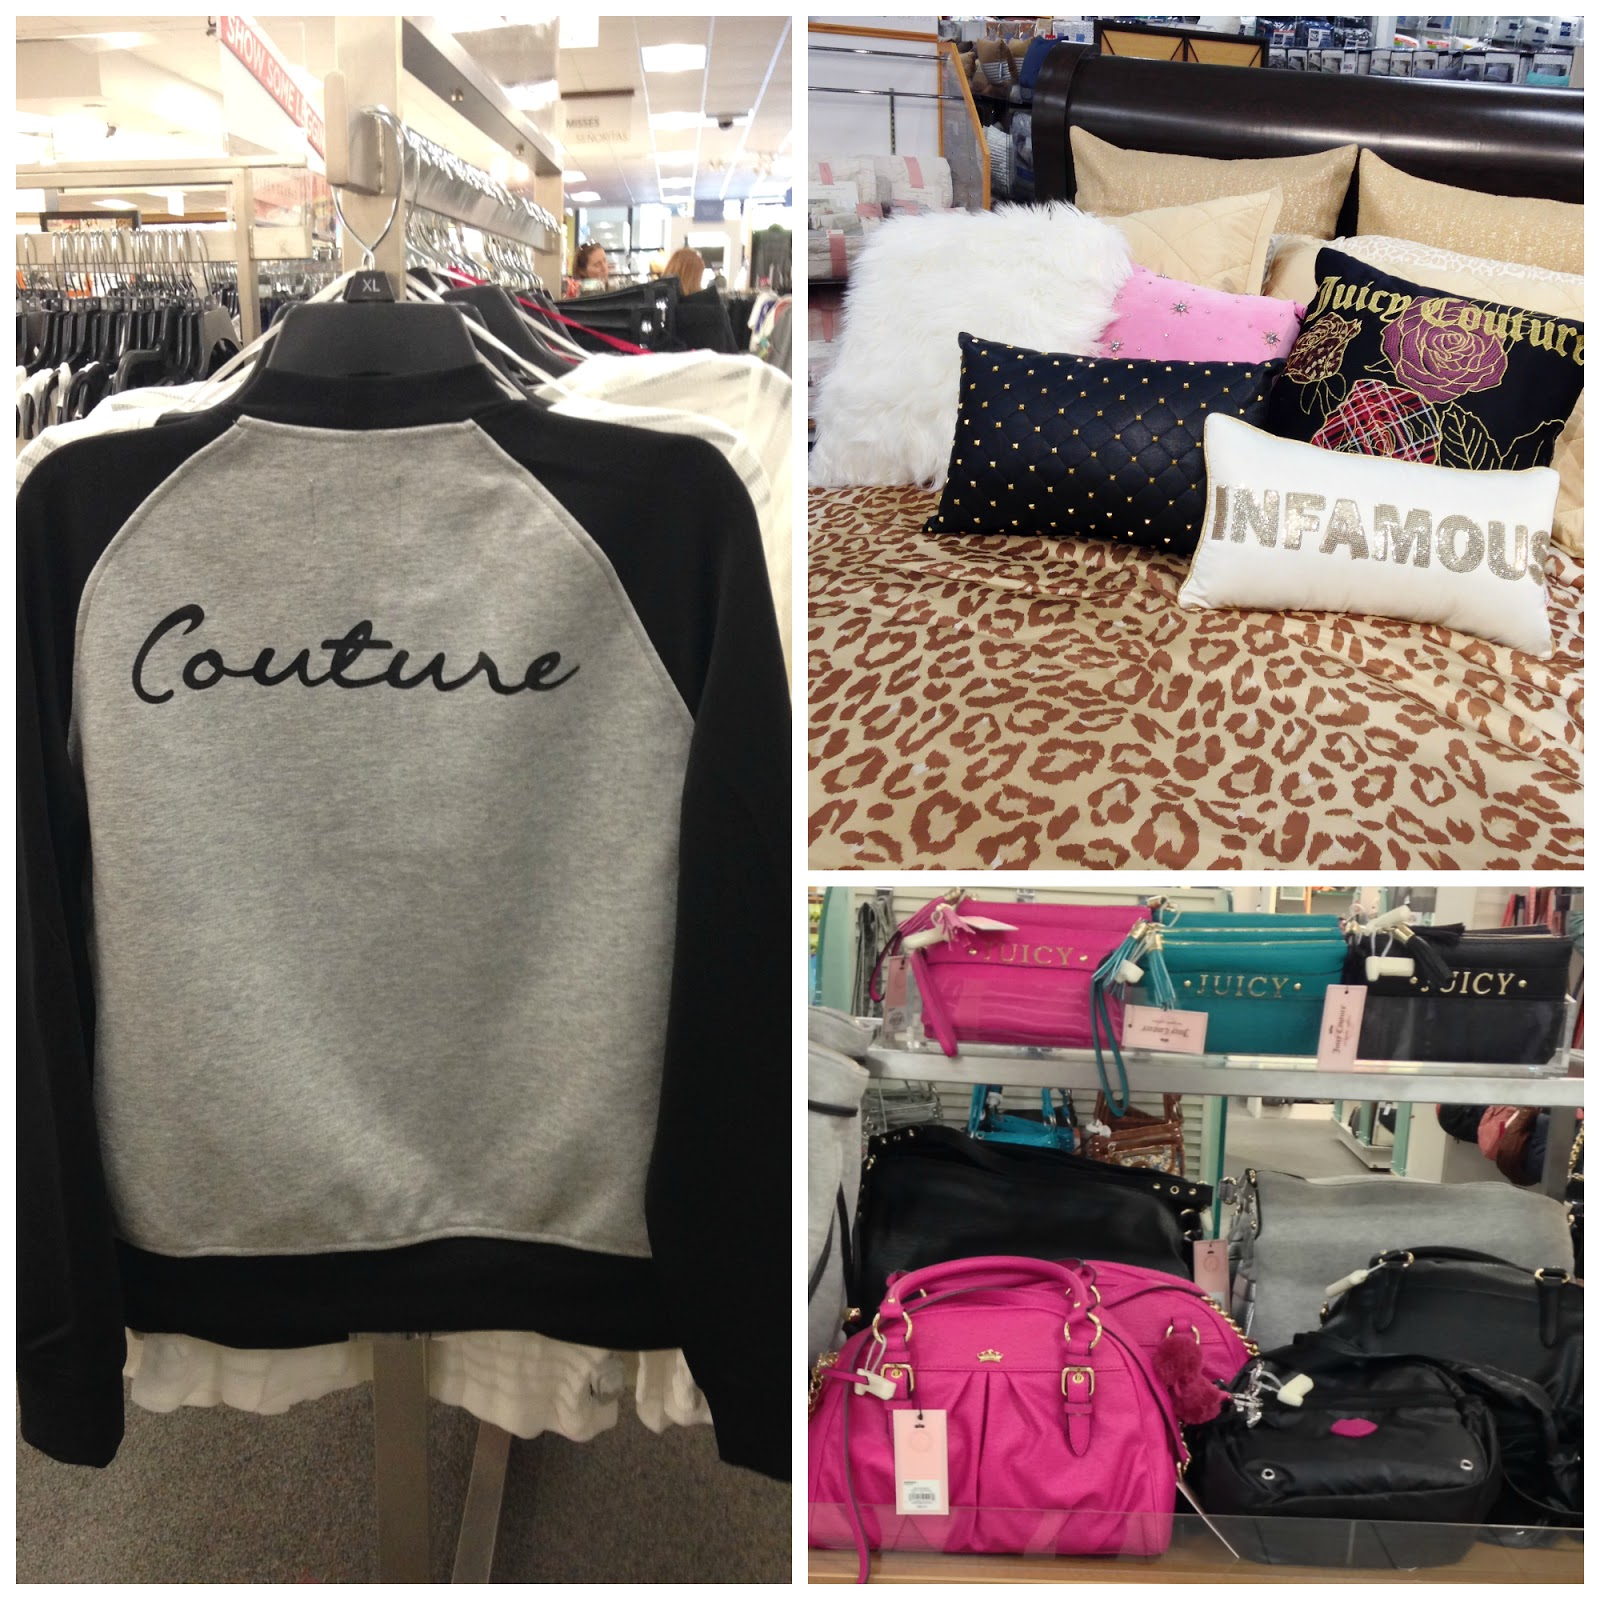 Tracy S Notebook Of Style Juicy Couture At Kohls Store